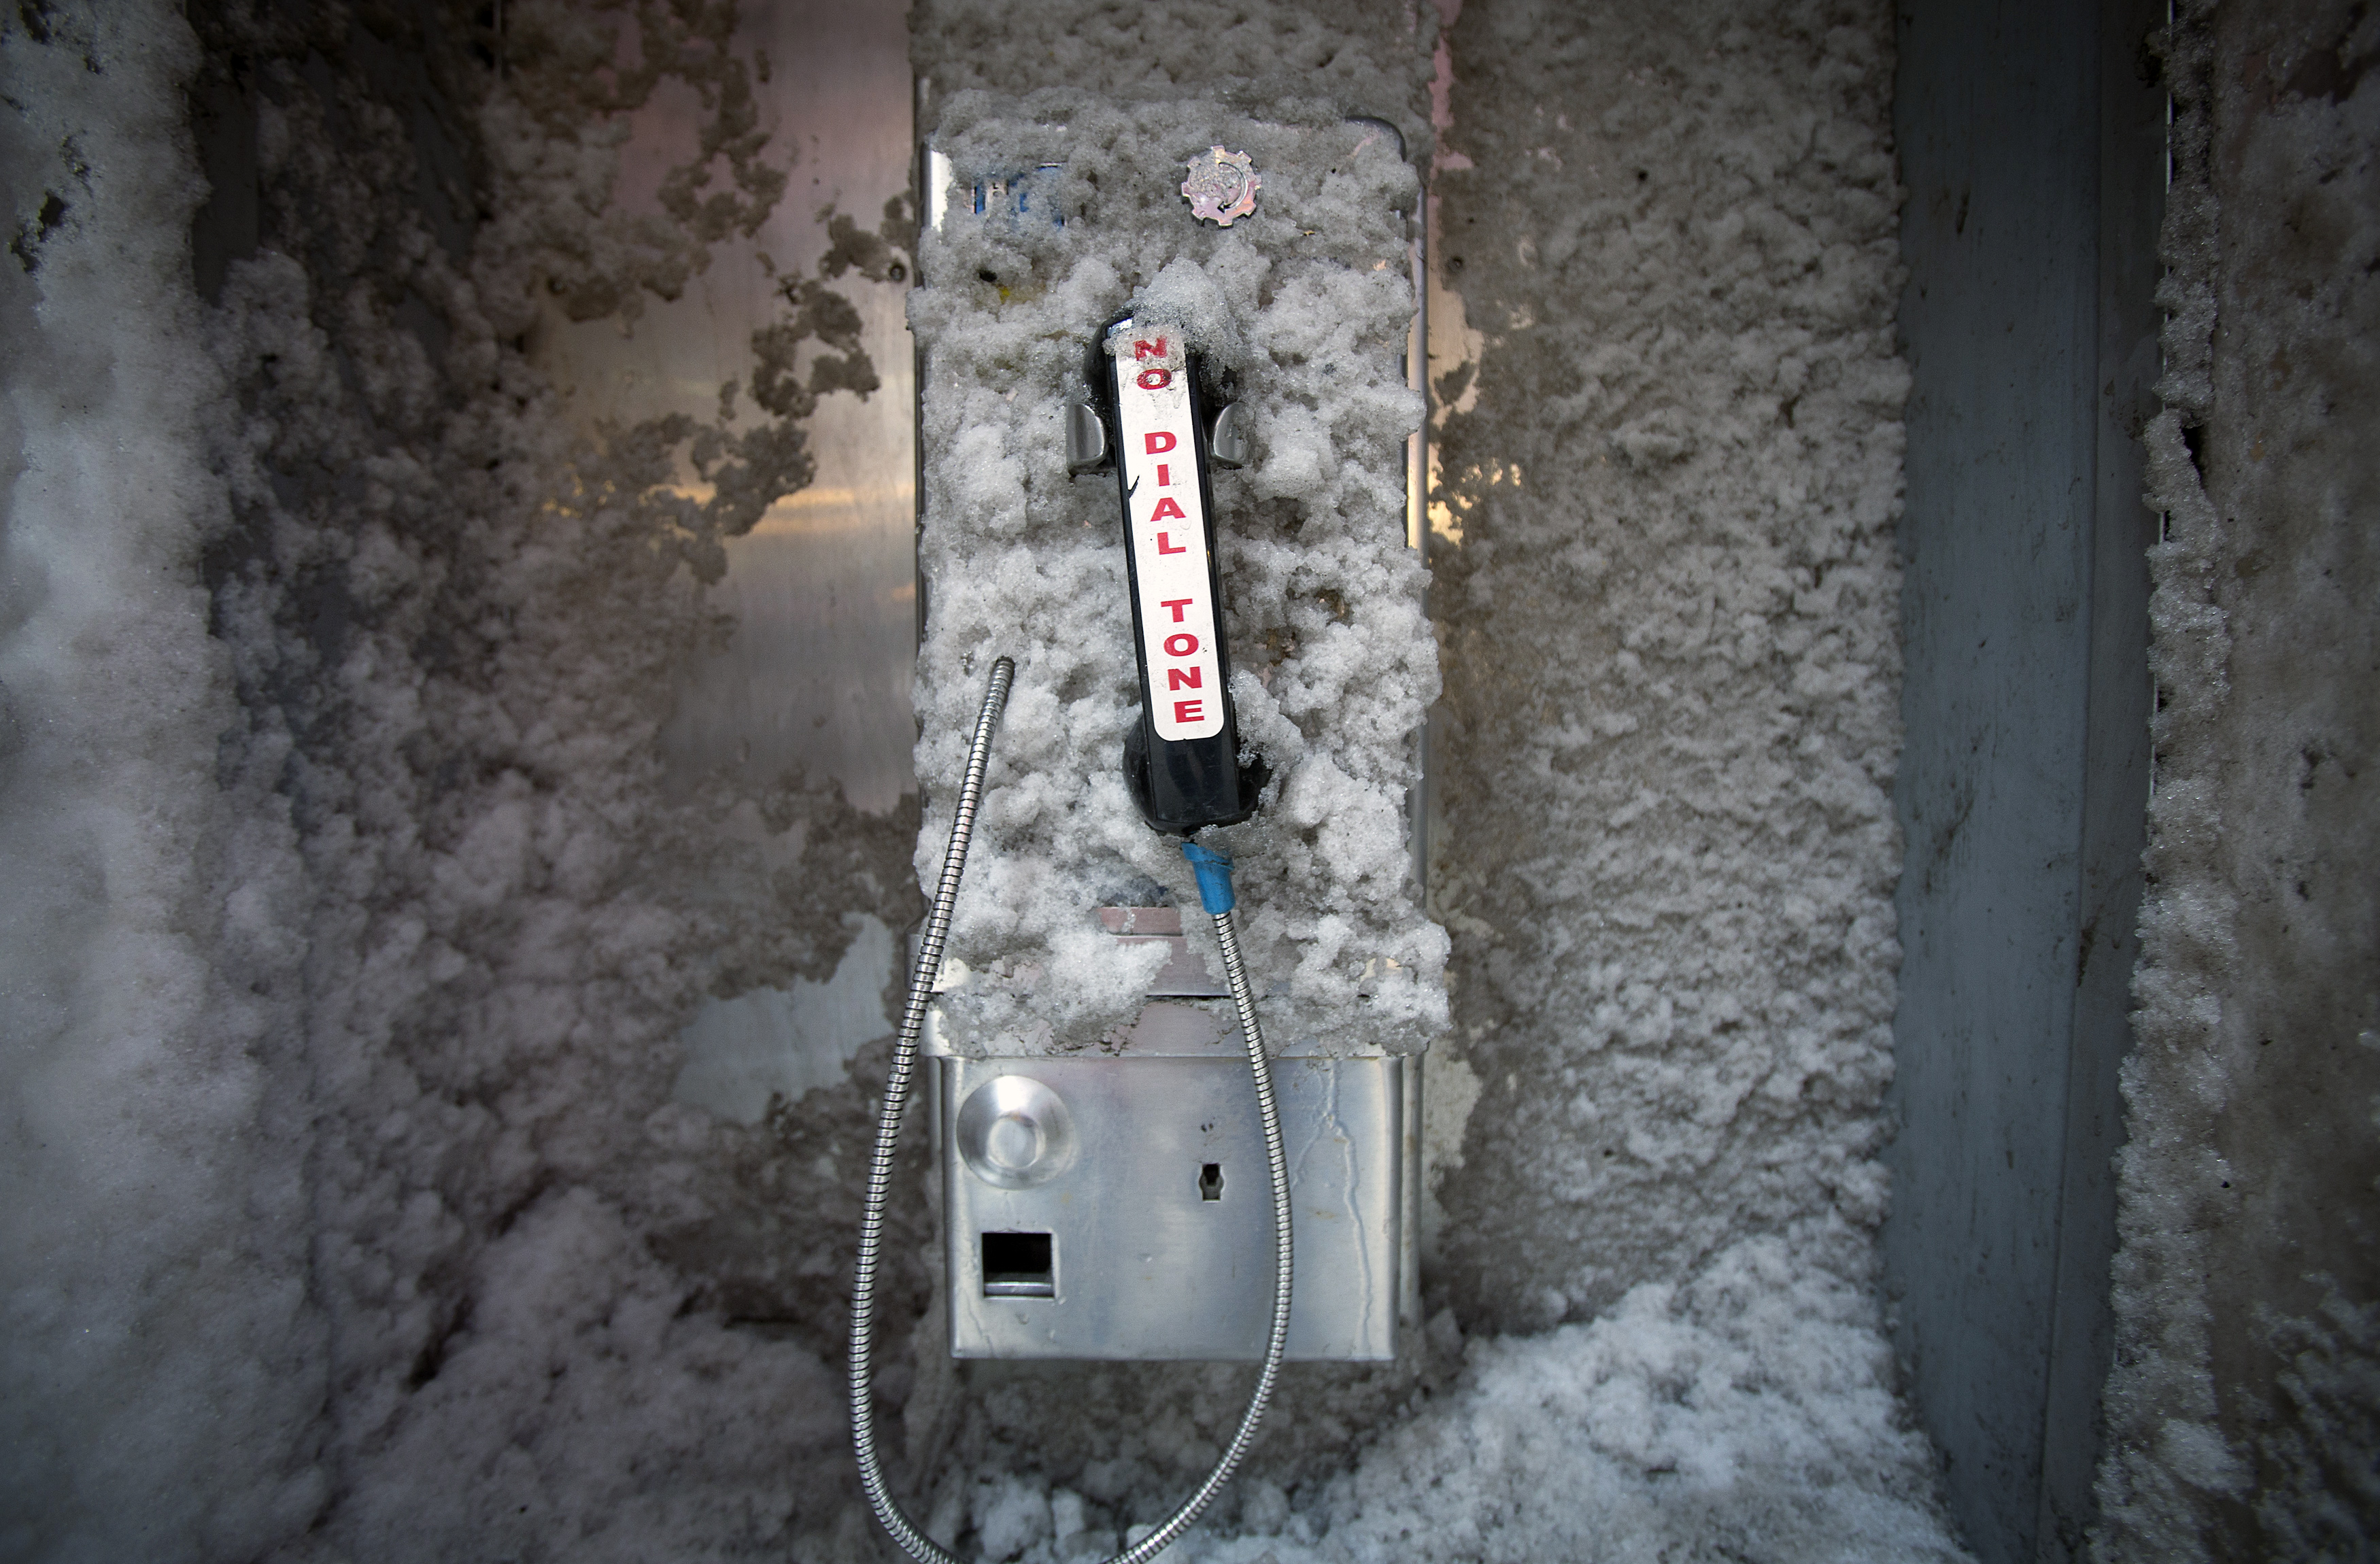 A disused pay phone is covered in snow in Times Square in New York February 5, 2014.